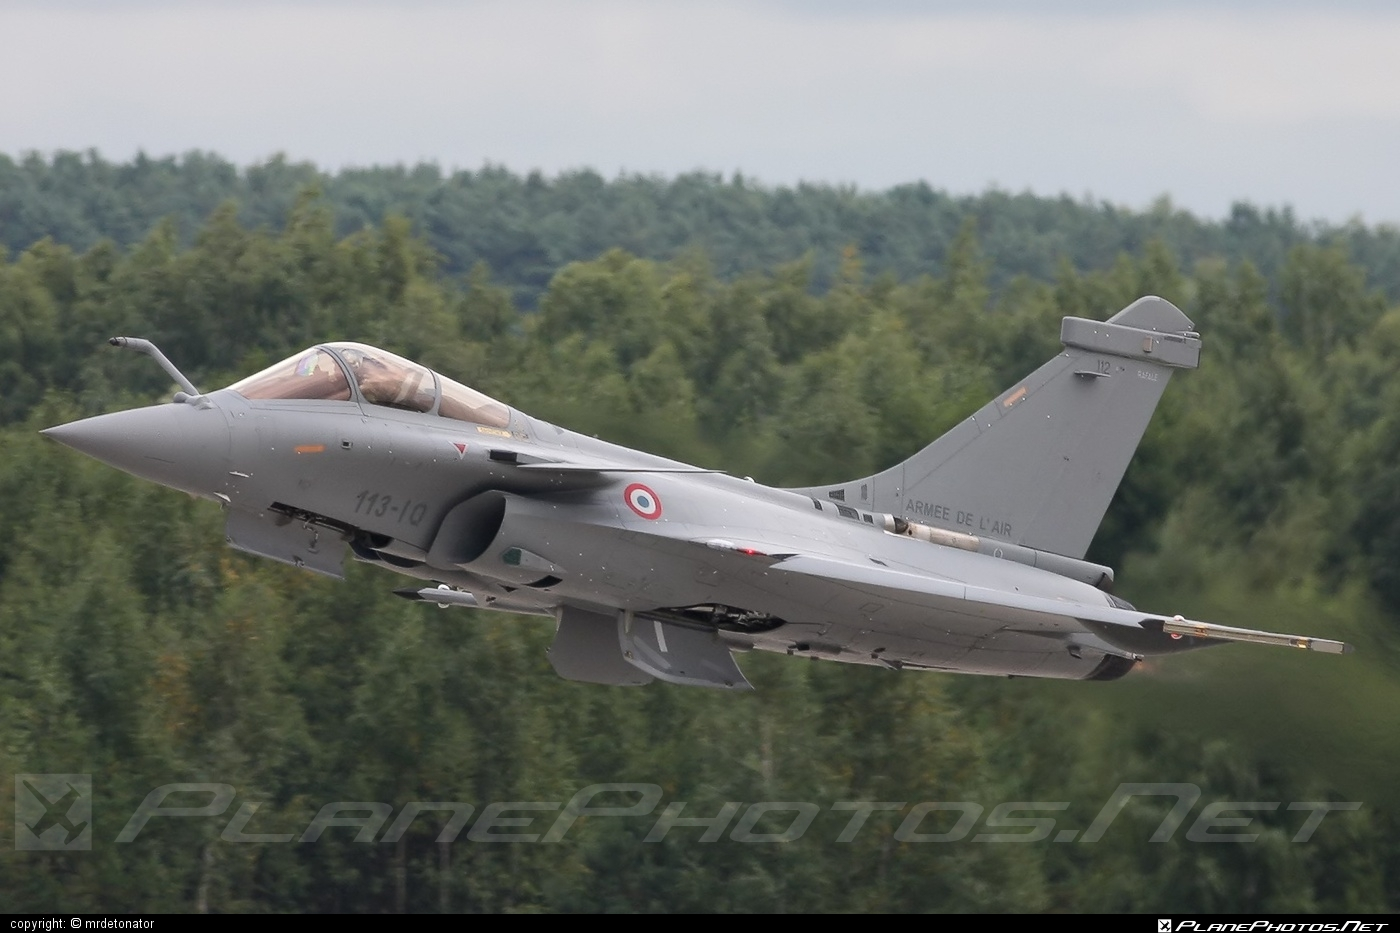 Dassault Rafale C - 112 operated by Armée de l´Air (French Air Force) #armeedelair #dassault #dassaultrafale #frenchairforce #maks2009 #rafale #rafalec